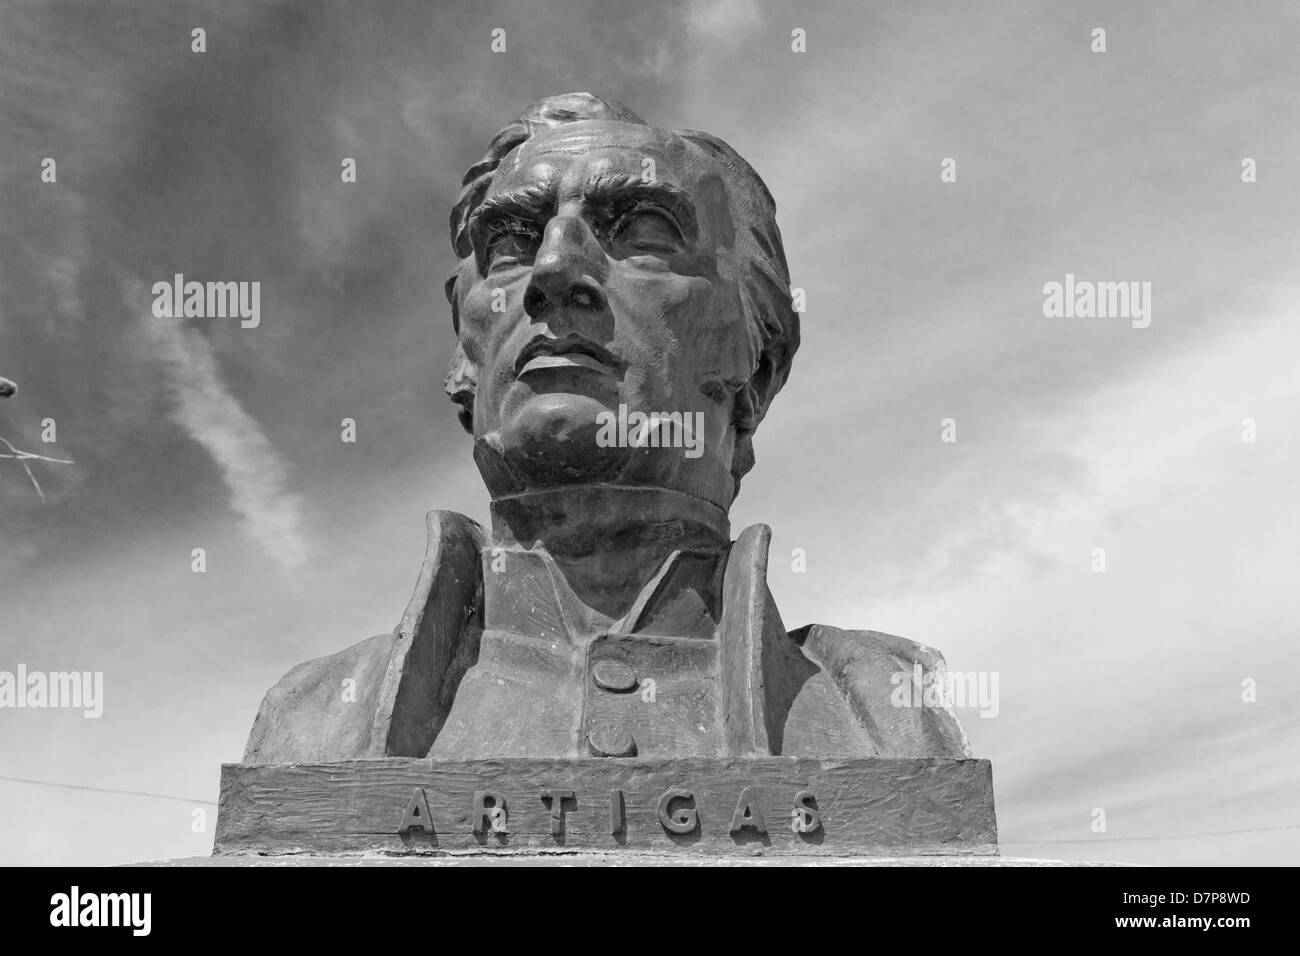 Statue of General Artigas, hero of the independence of the Republic of Uruguay. - Stock Image